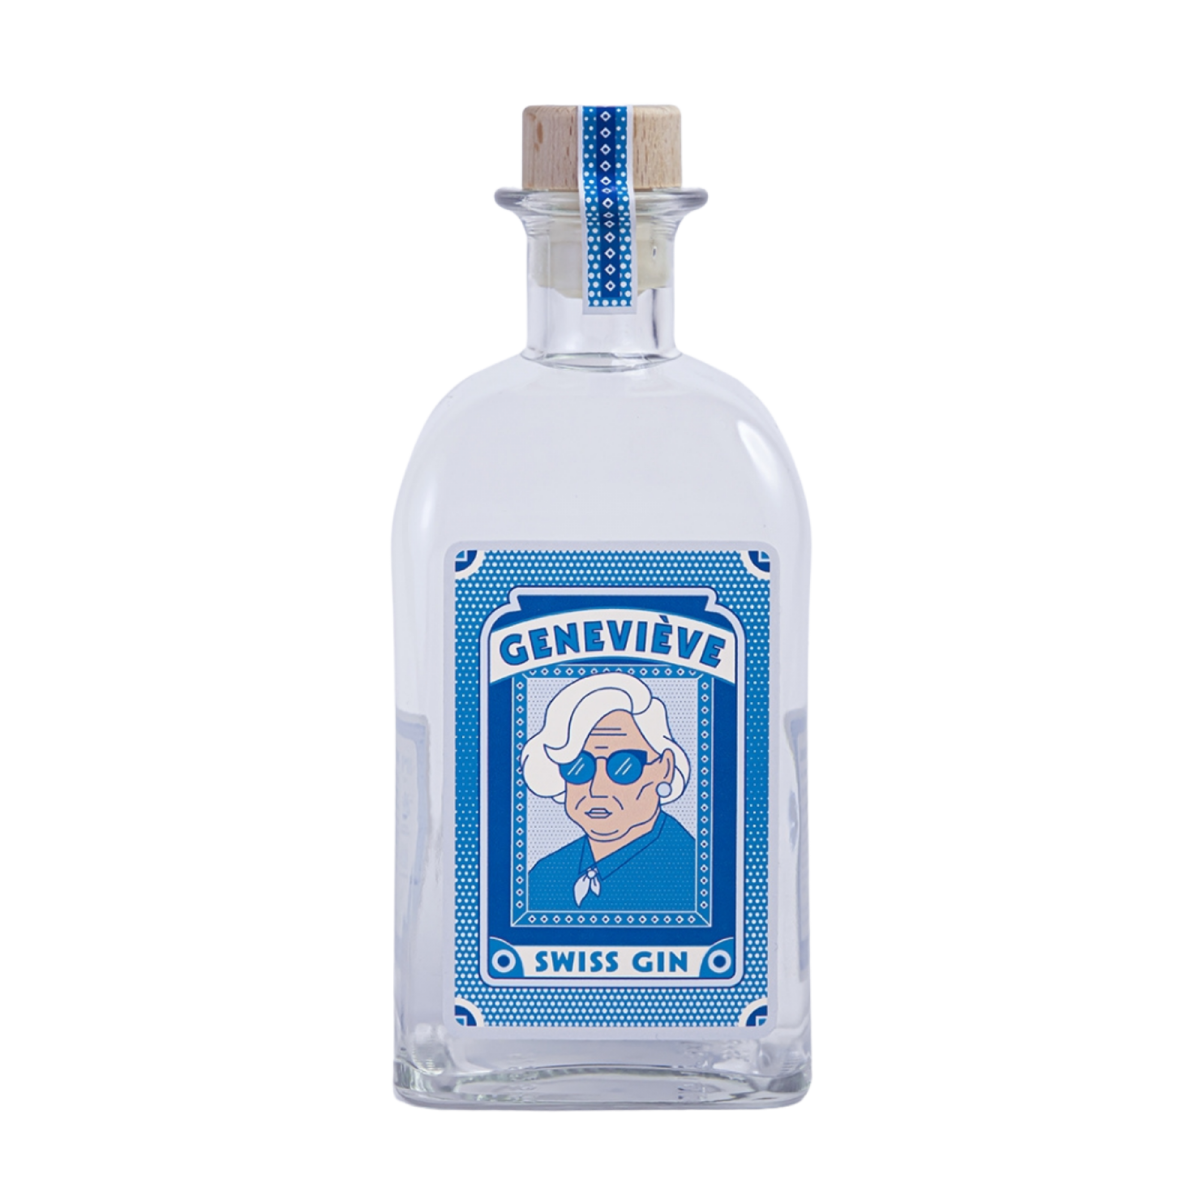 Gin Mamie Geneviève - Le Gin des Mamies - Alcools - GM1